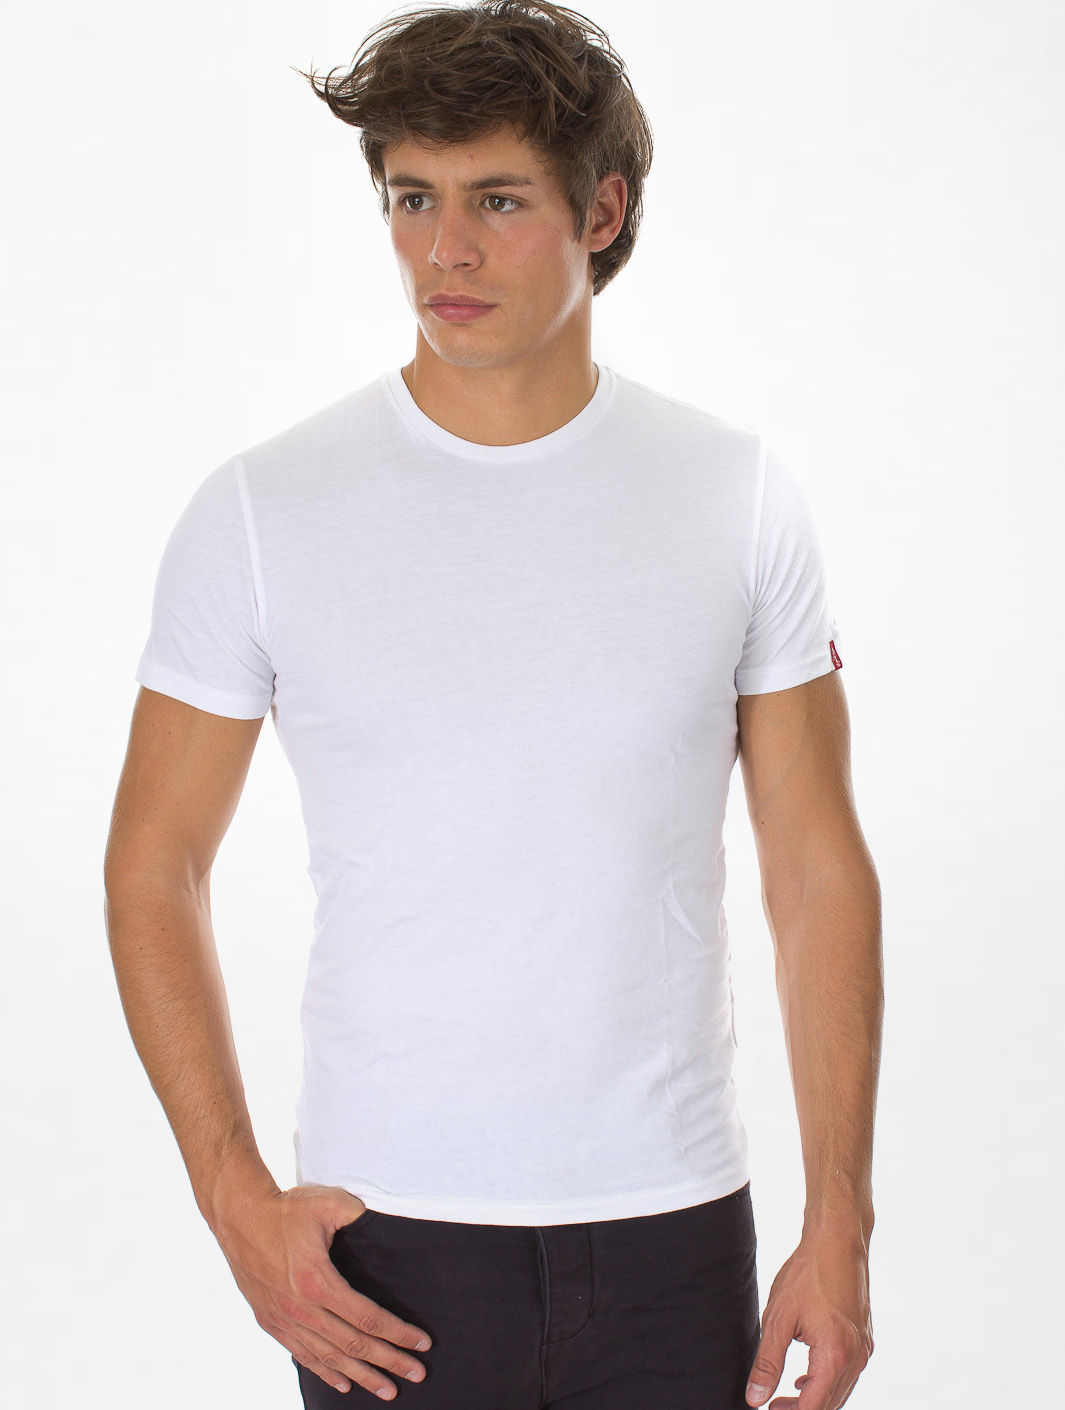 T shirts every man should own wonder wardrobes for Crew neck white t shirt